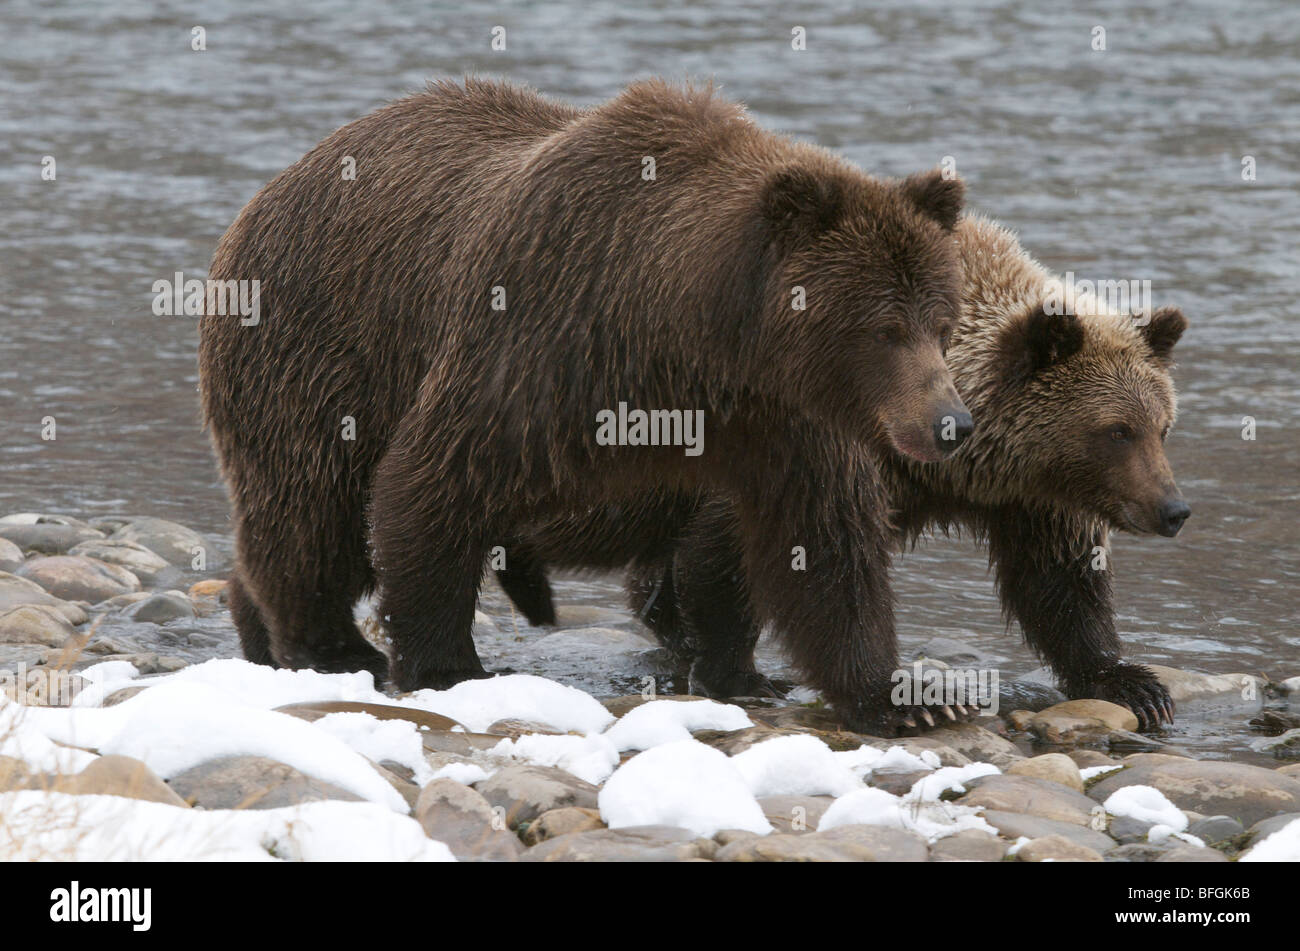 Grizzly Bear and 2nd year cub (Ursus arctos) on Fishing Branch River, Ni'iinlii Njik Ecological Reserve, Yukon - Stock Image